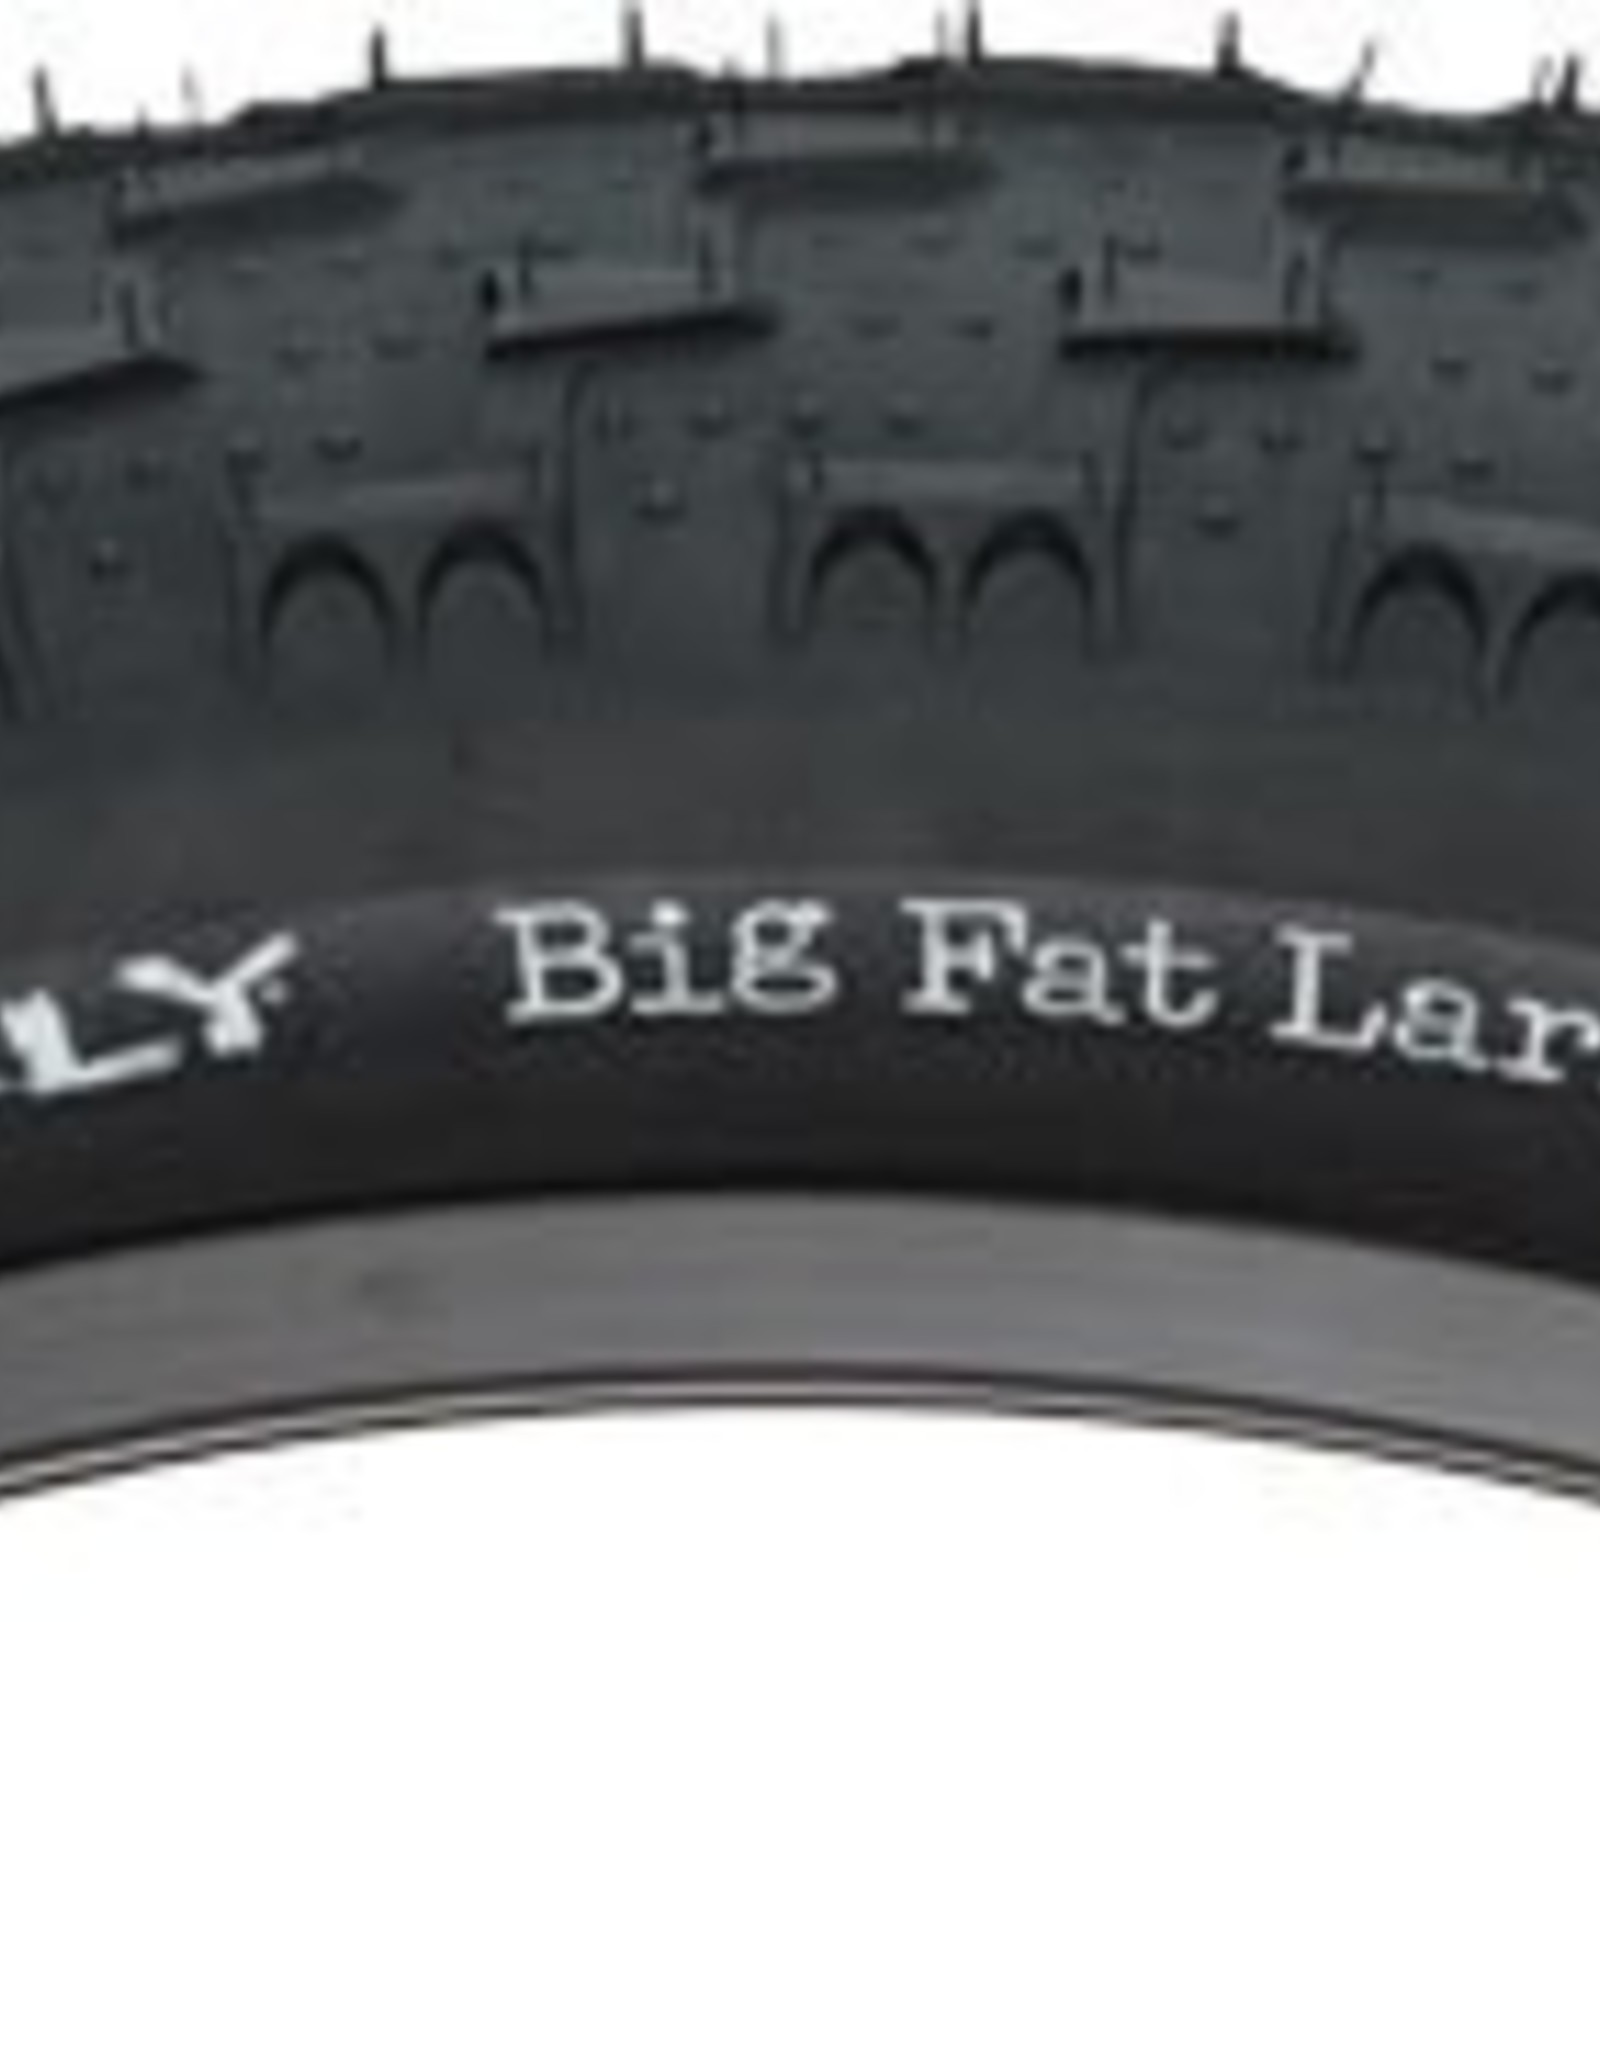 "Surly Surly Big Fat Larry 26 x 4.7"" 120tpi Folding Tire"